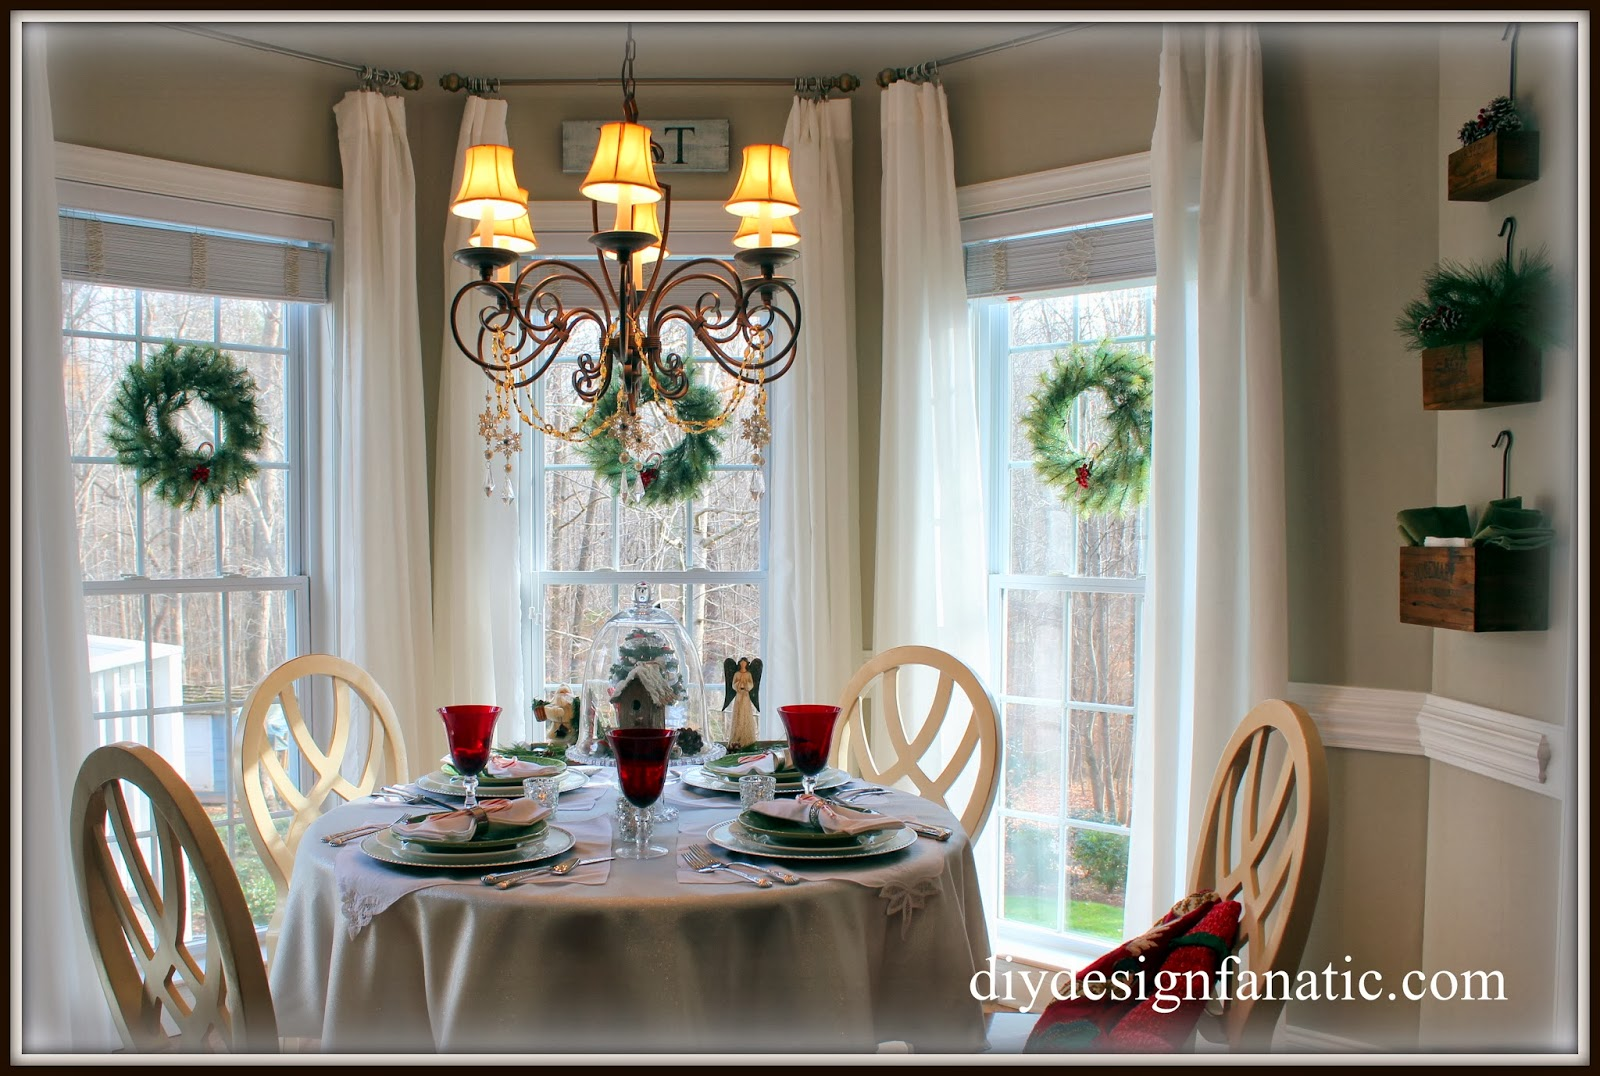 Diy Design Fanatic Christmas In The Breakfast Room 2013